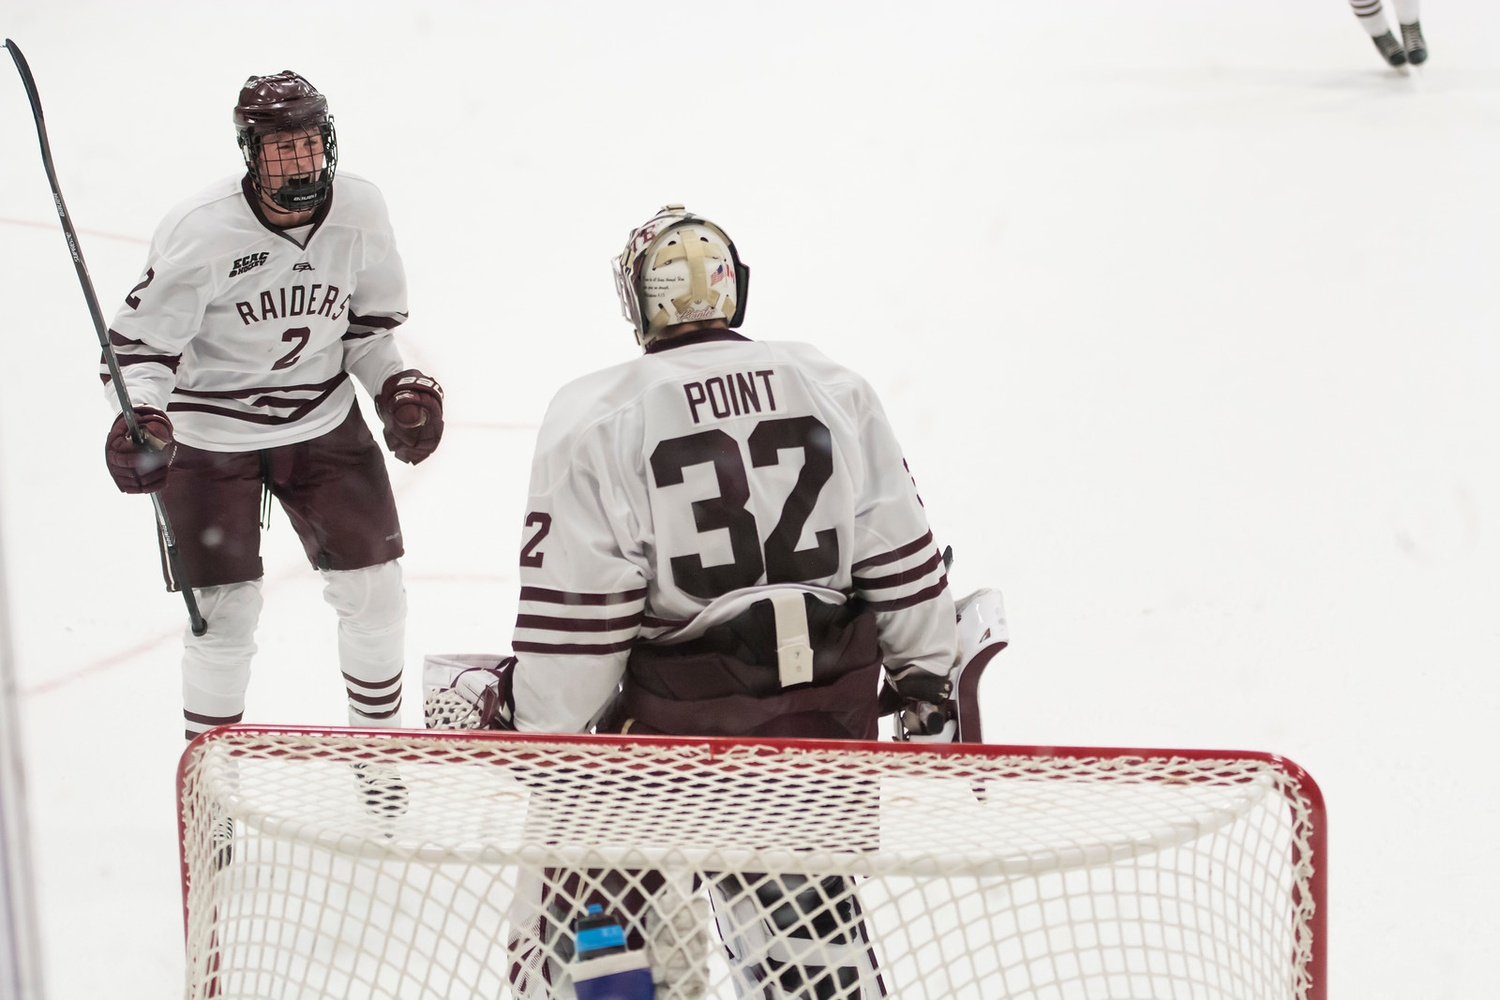 Sophomore goaltender Colton Point shut Harvard down in November's meeting. The Crimson will look to make Point's life a bit more nightmarish this time around.